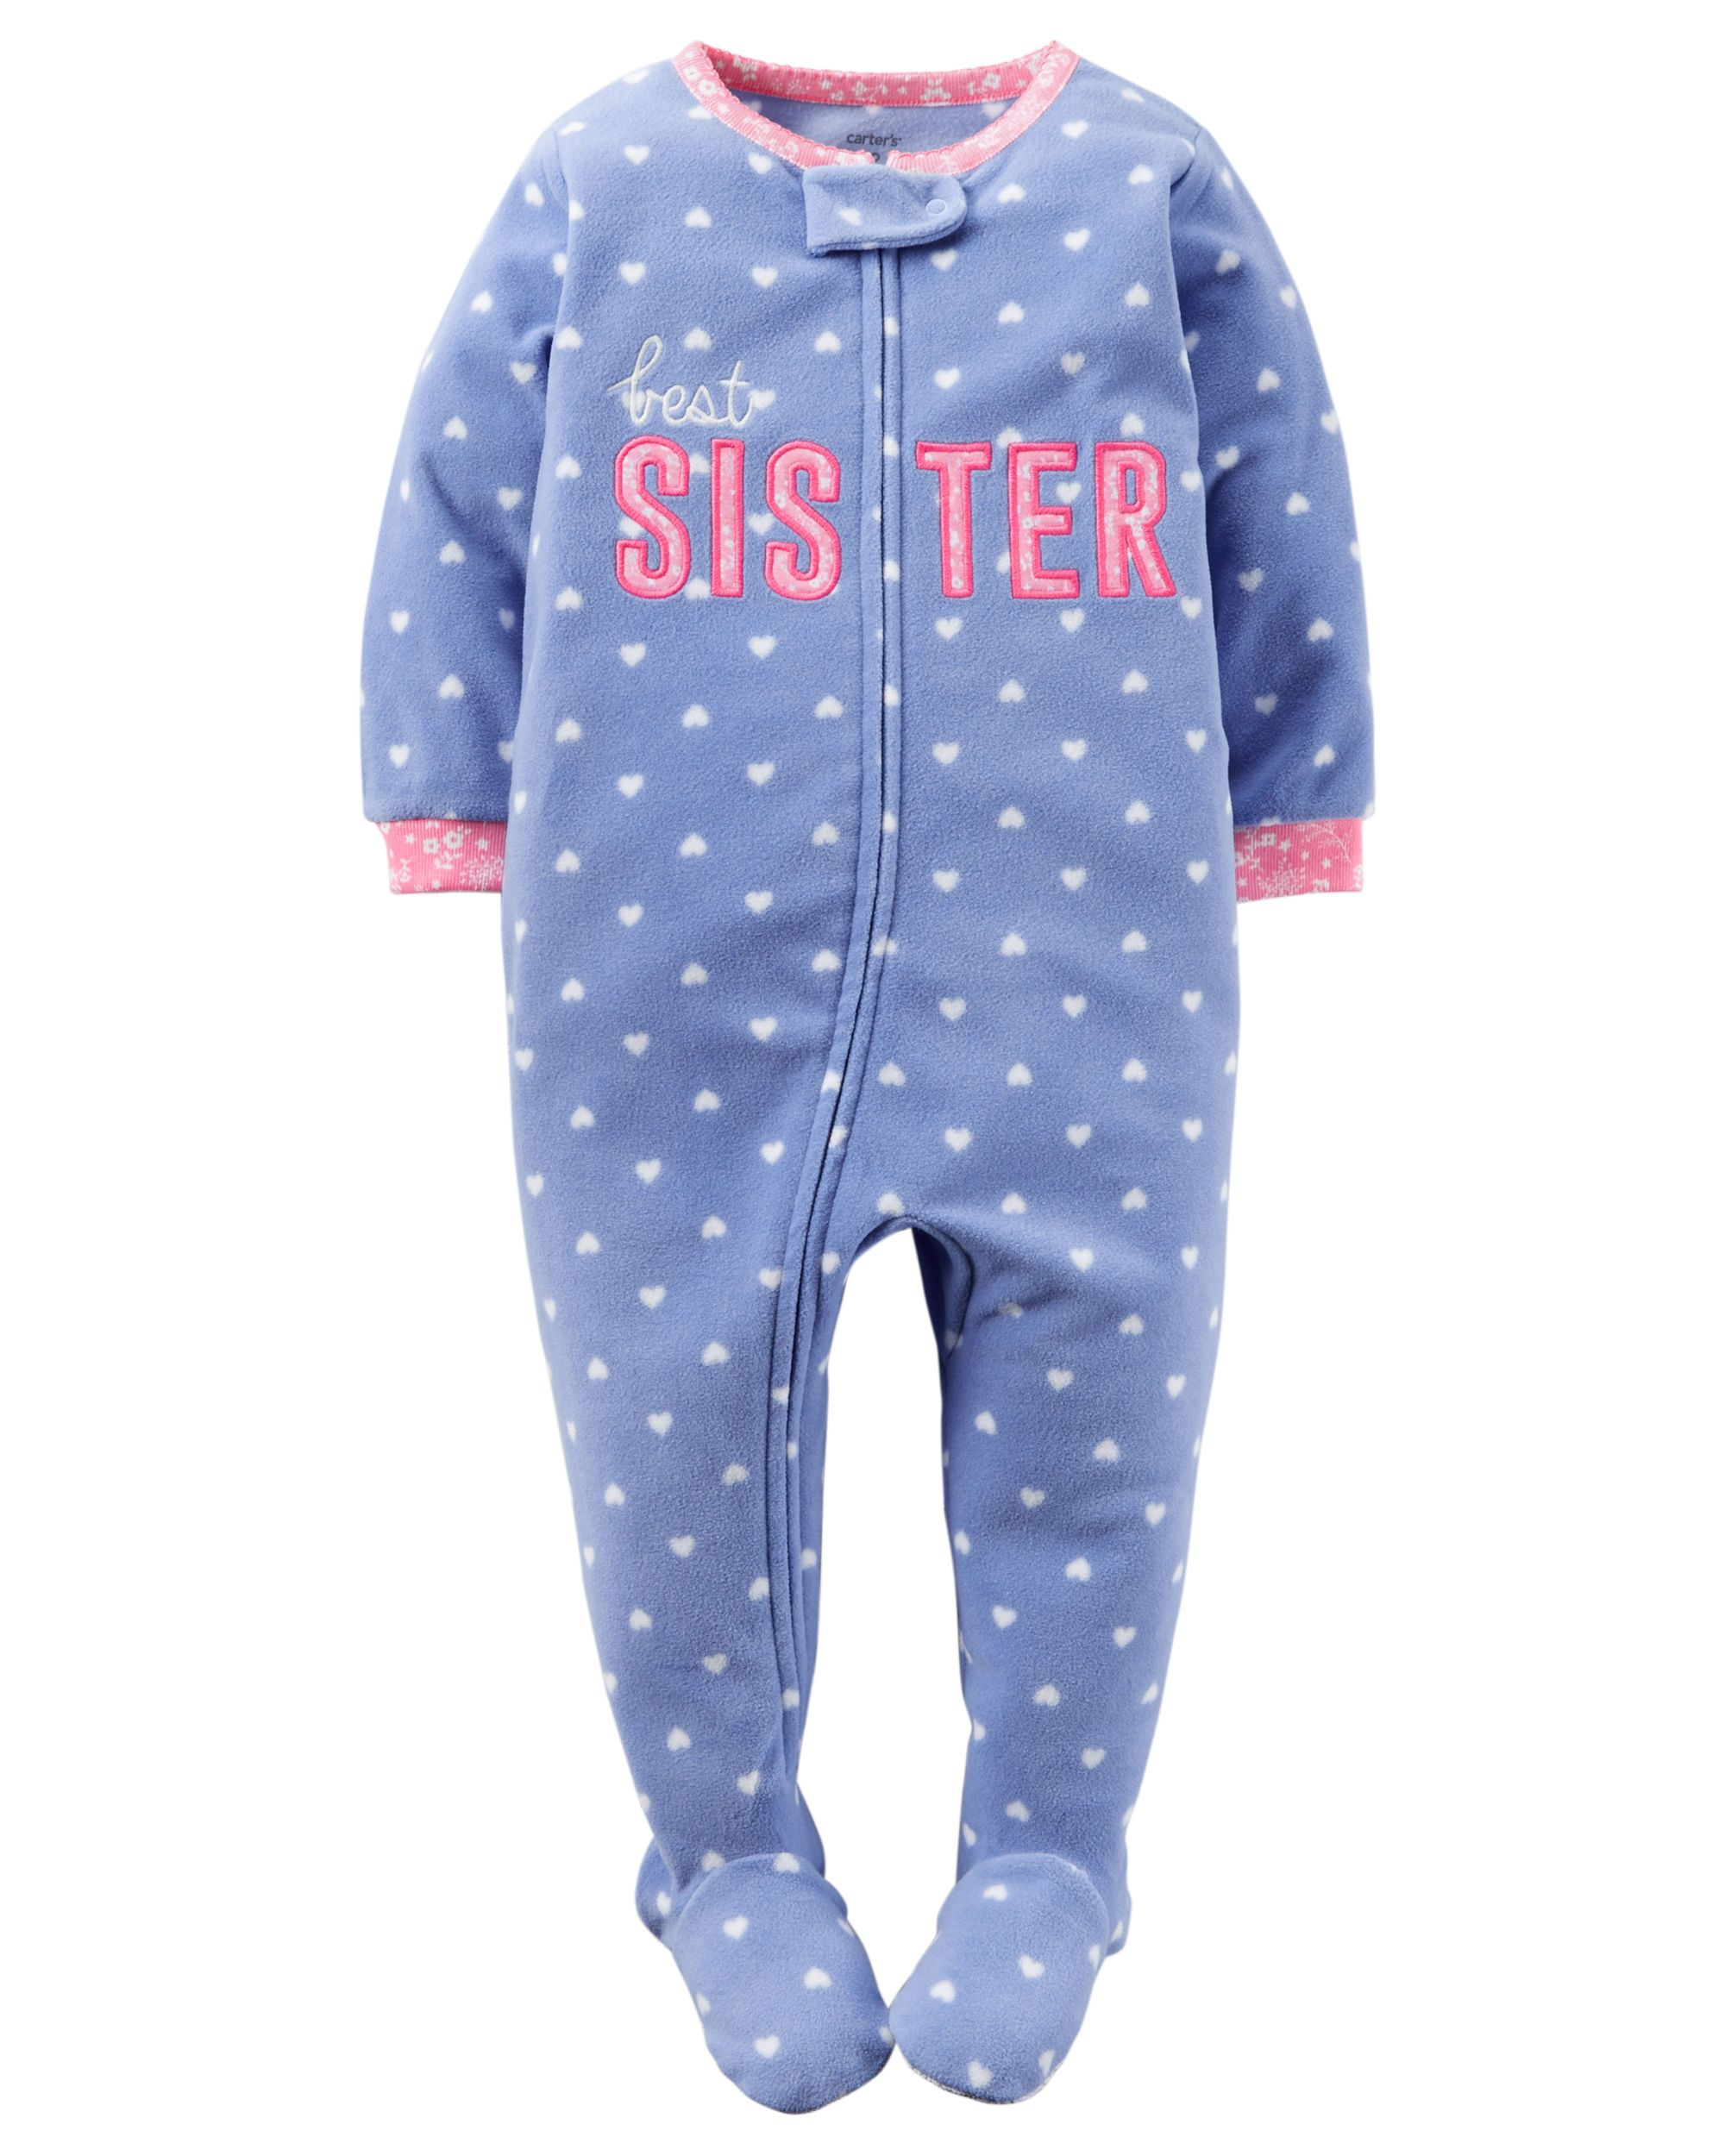 1efe5f1e4 Keep little sister snug all night in these cozy pjs.